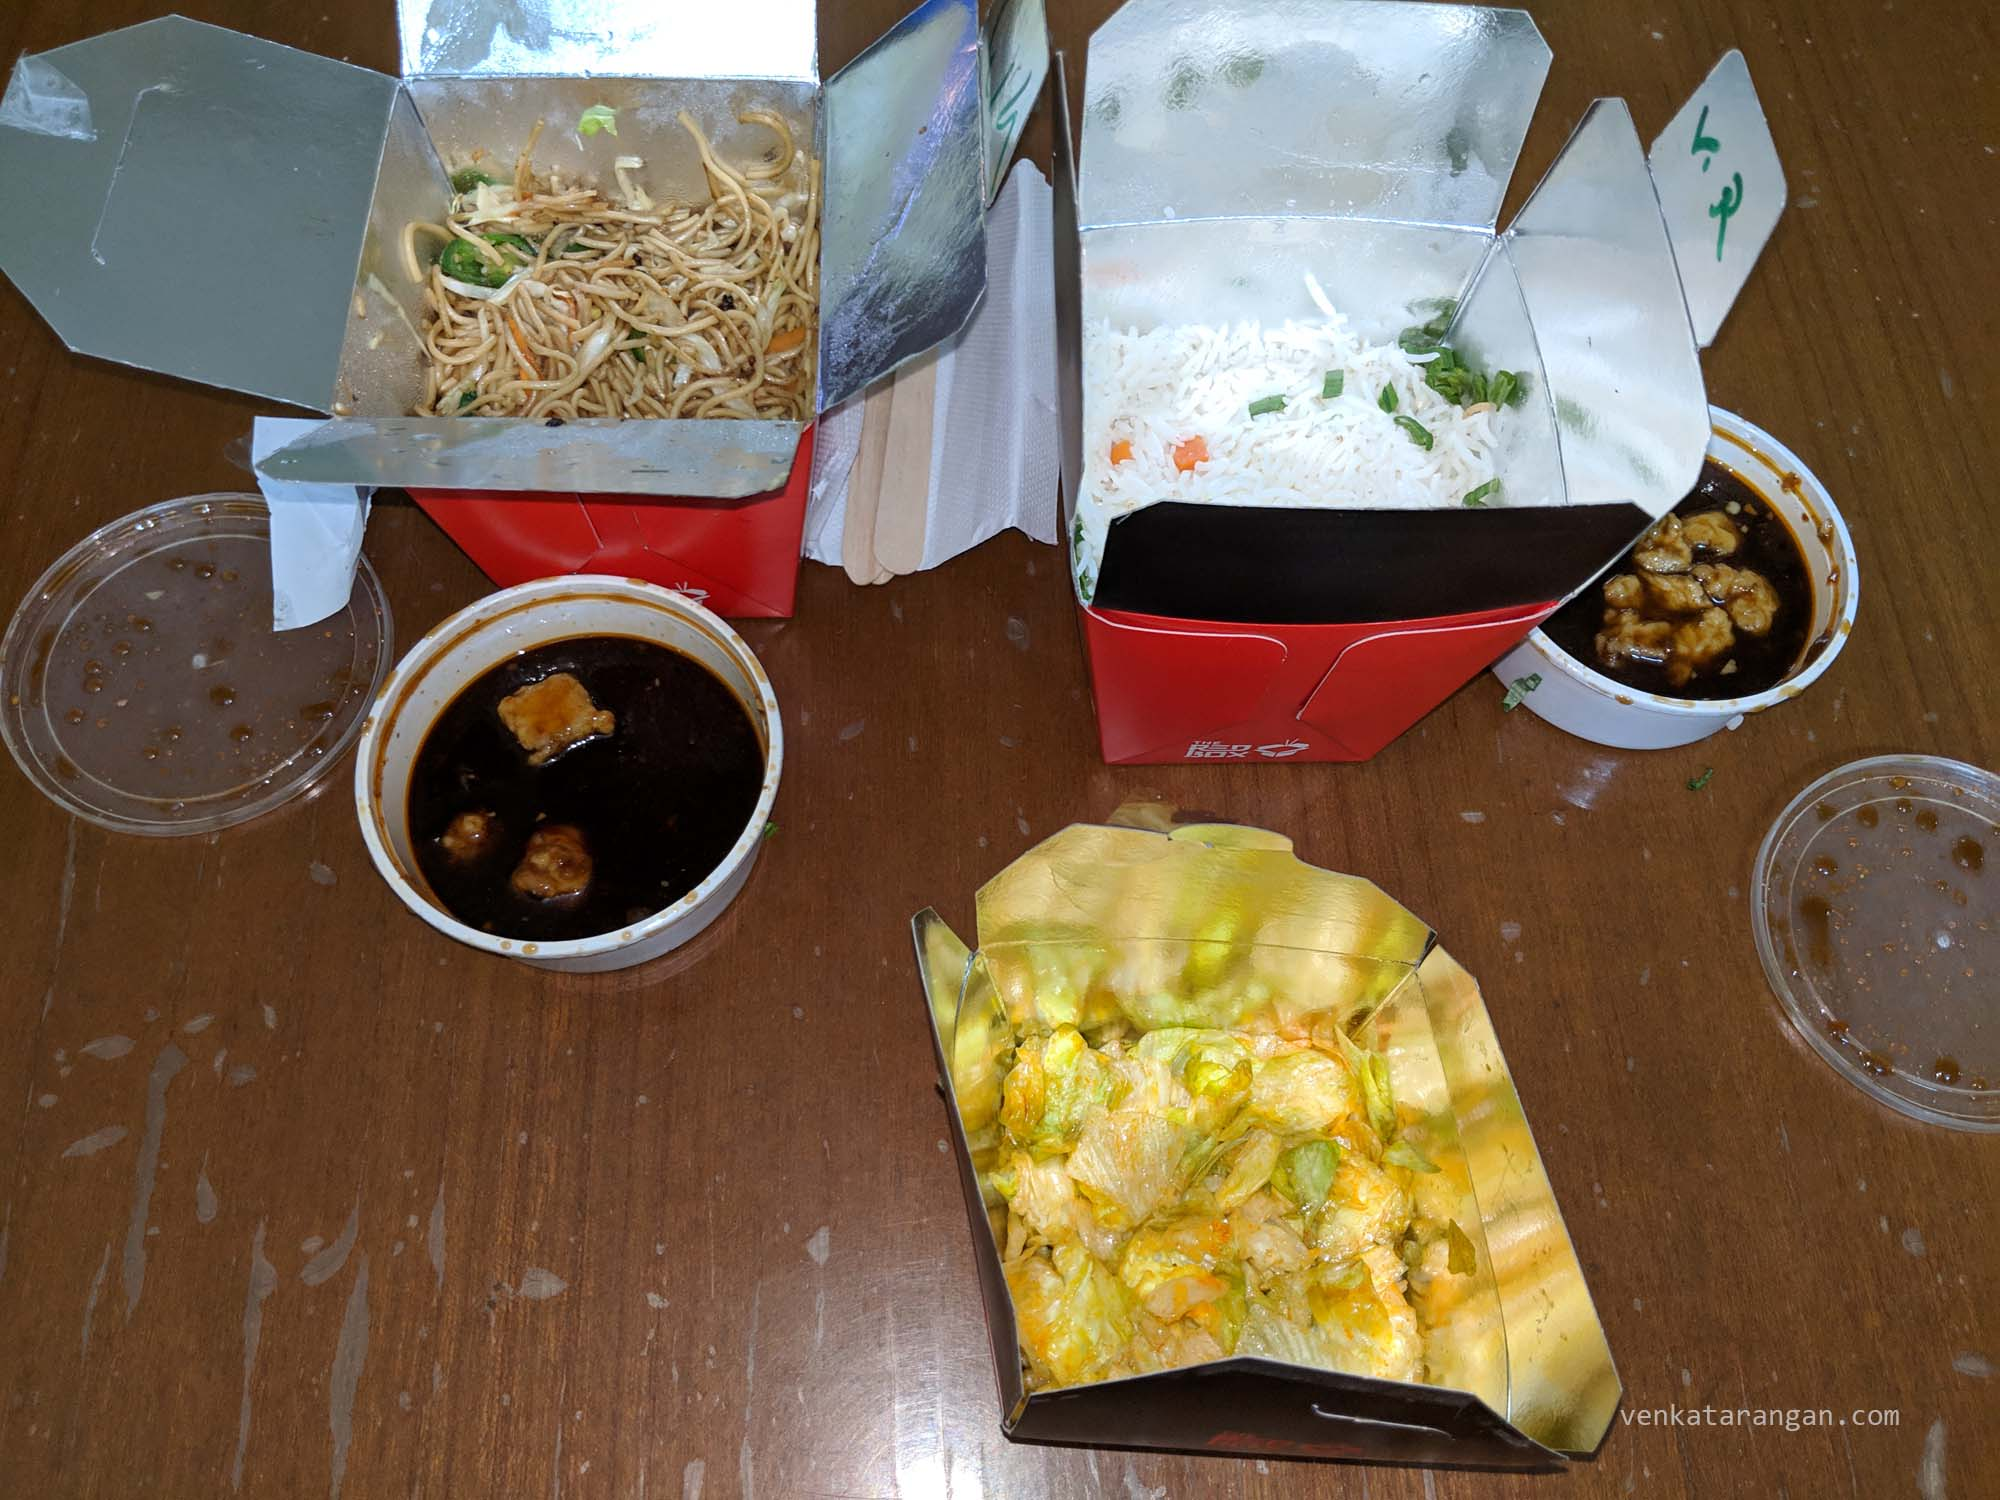 (Clockwise from left) Veg Chilli Garlic Noodles with Kung Pao Paneer, Veg Fried Rice with schezwan cauliflower, and, Thai Lettuce Salad.